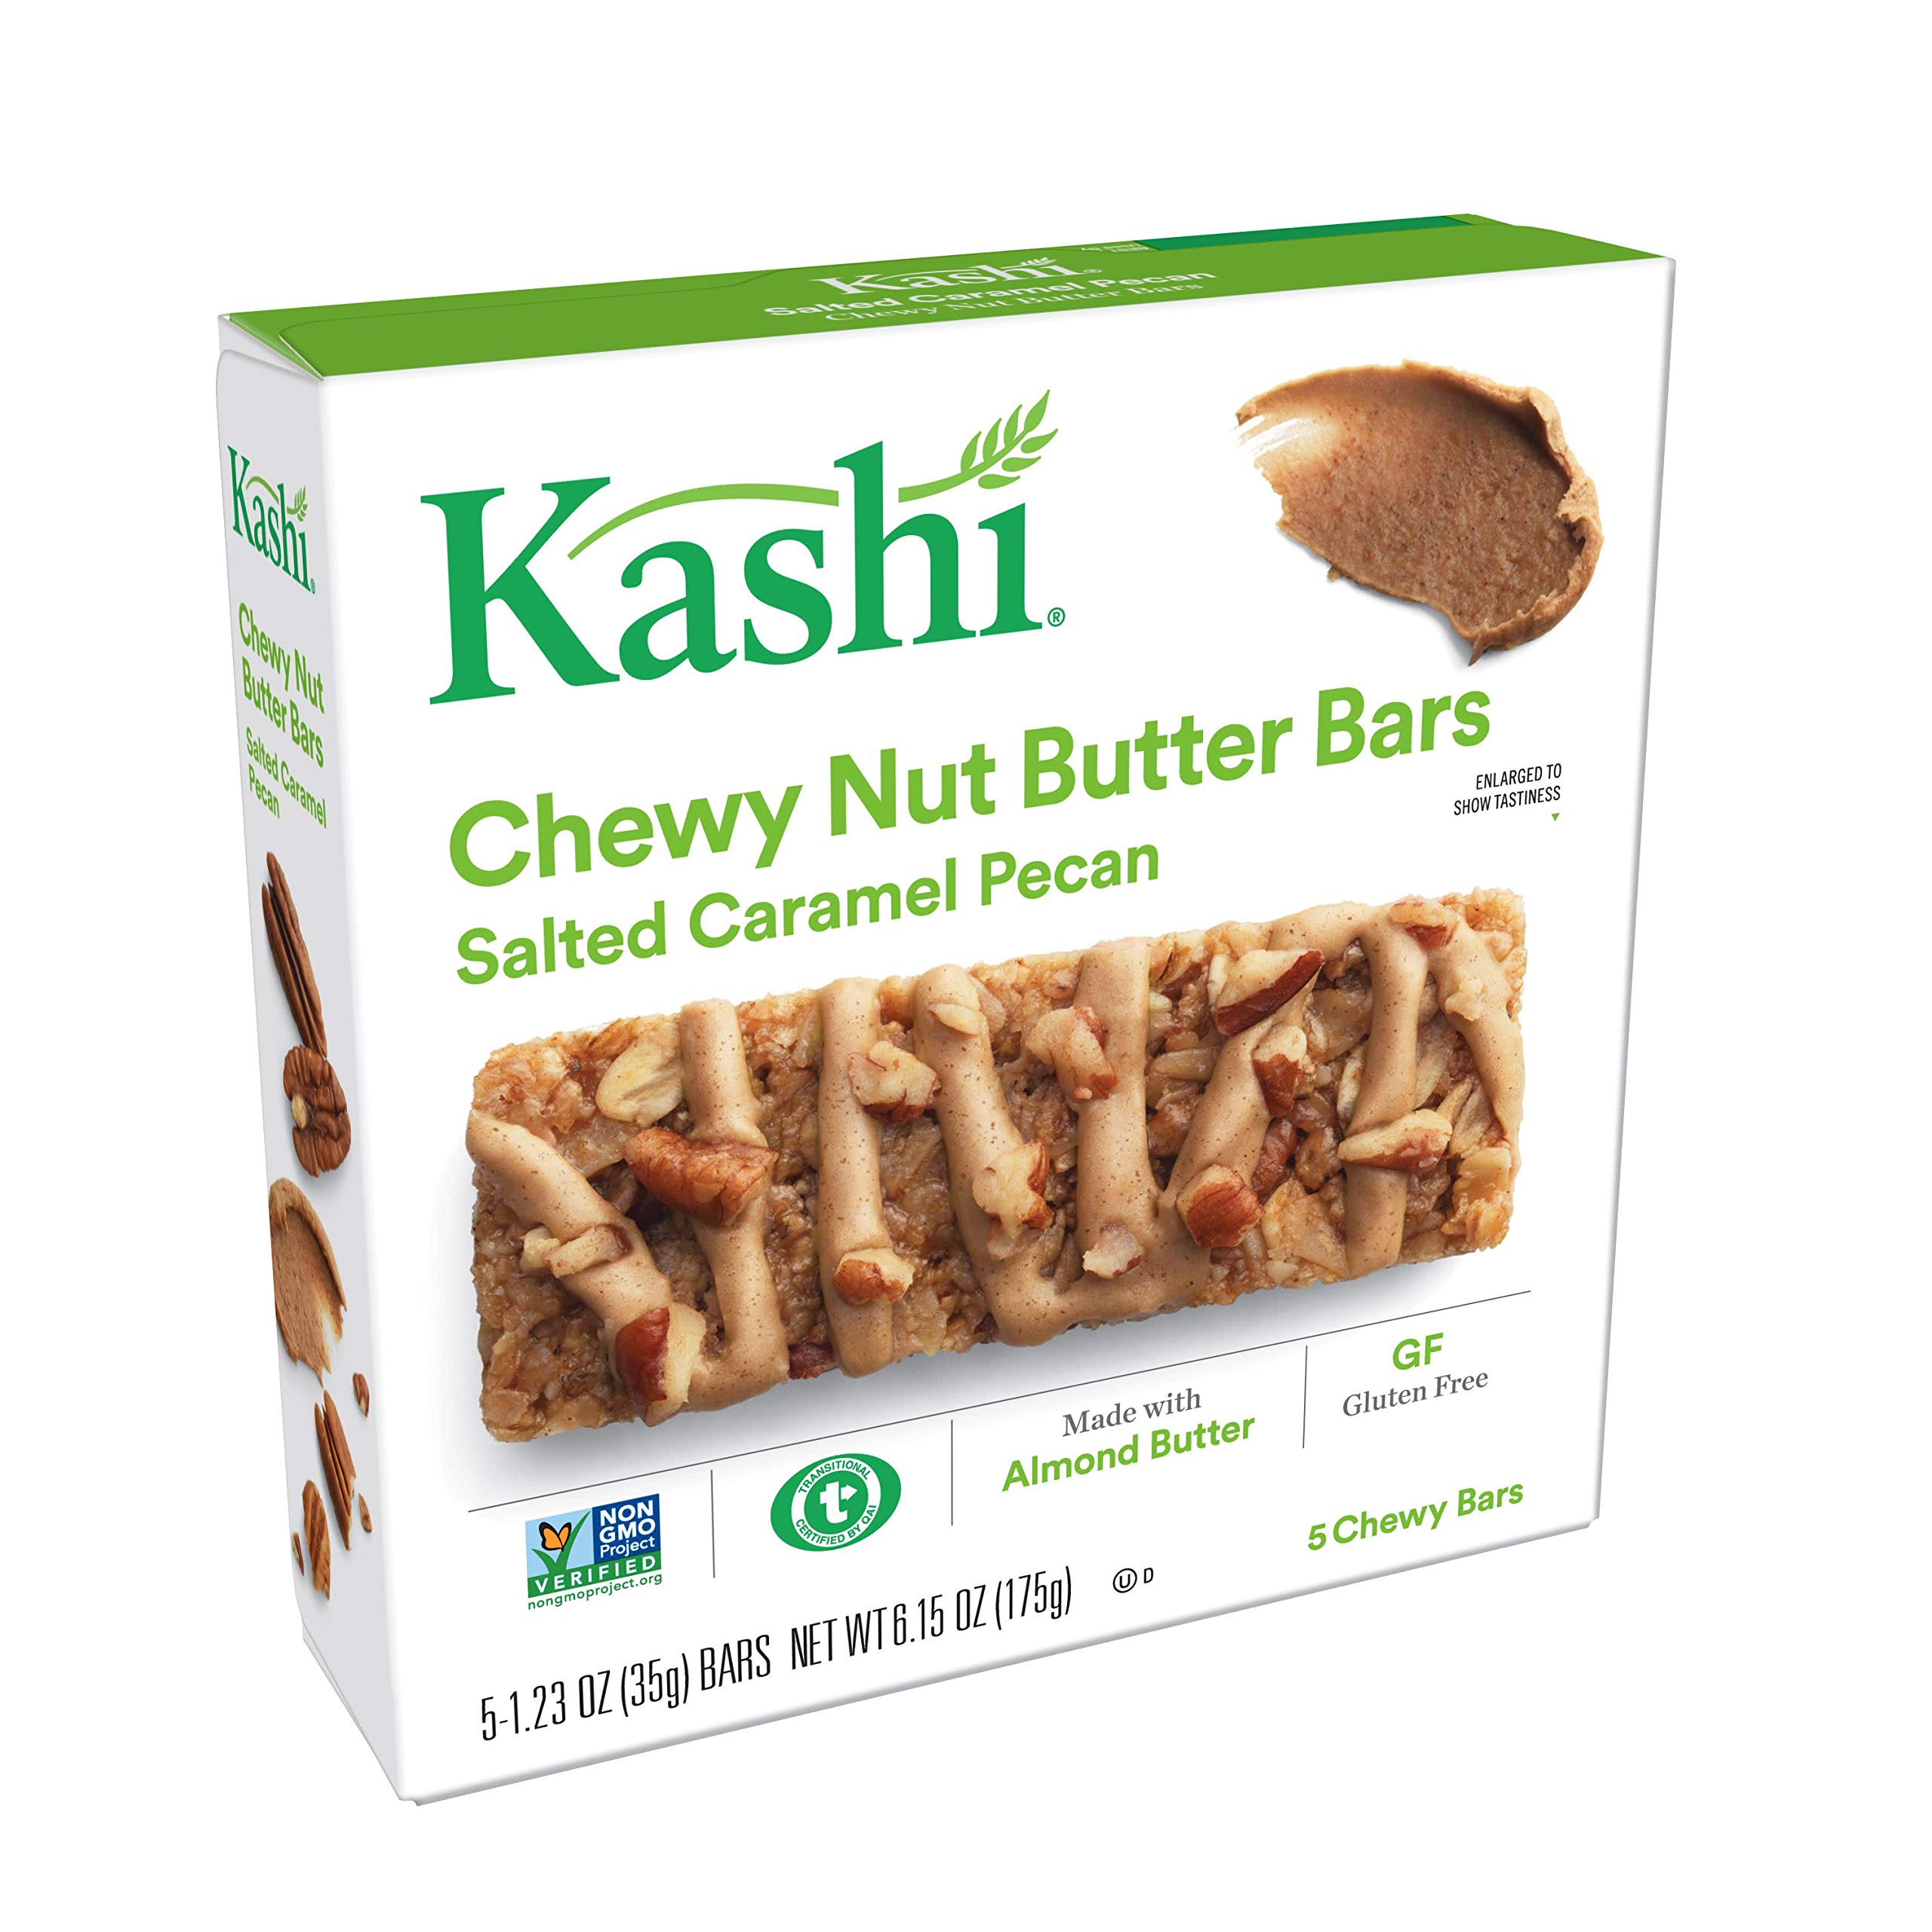 Kashi, Chewy Nut Butter Bars, Salted Caramel Pecan, Gluten Free, Non-GMO Project Verified, 6.15 oz (5 Count)(Pack of 8) by Kashi (Image #6)